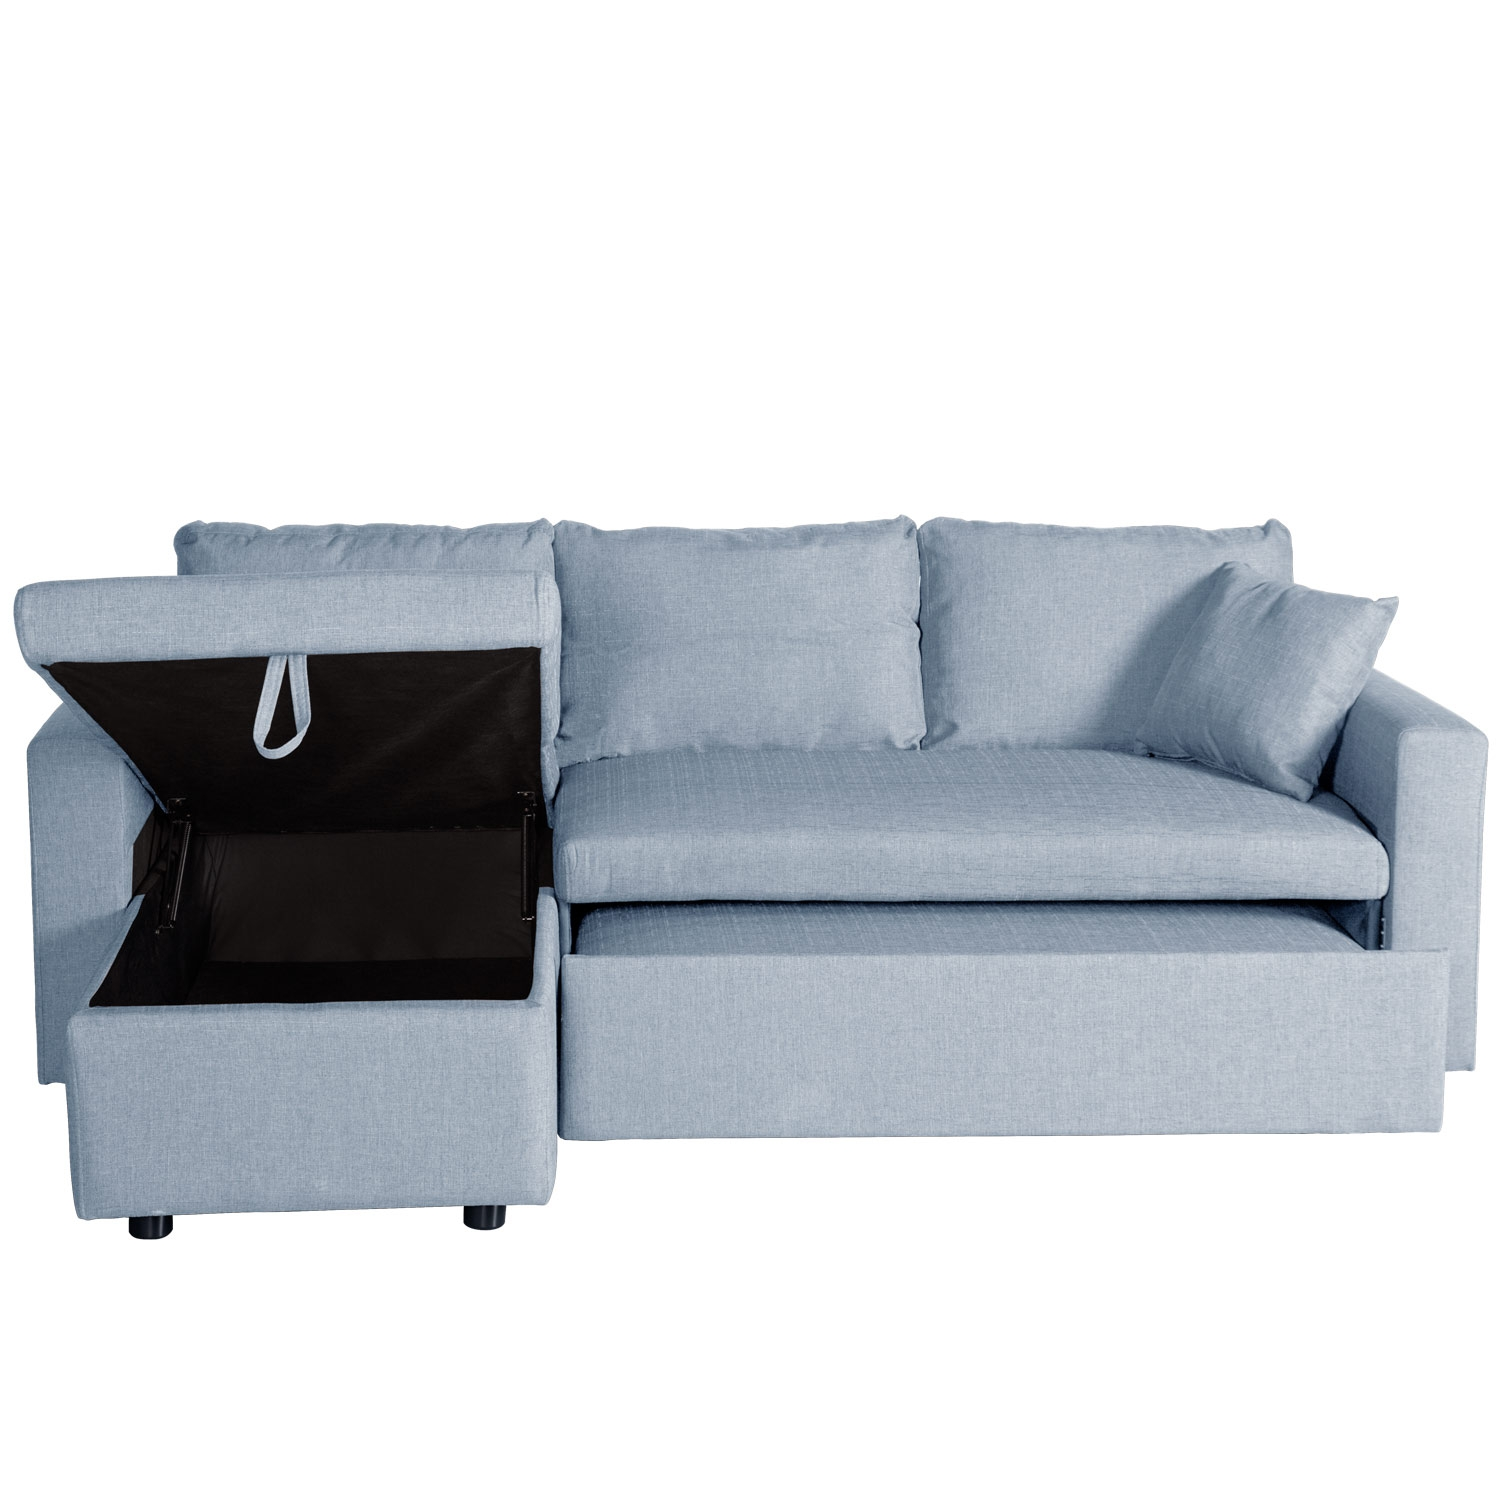 Compra online sof cama chaise longue adara barato 490 00 for Chaise longue online